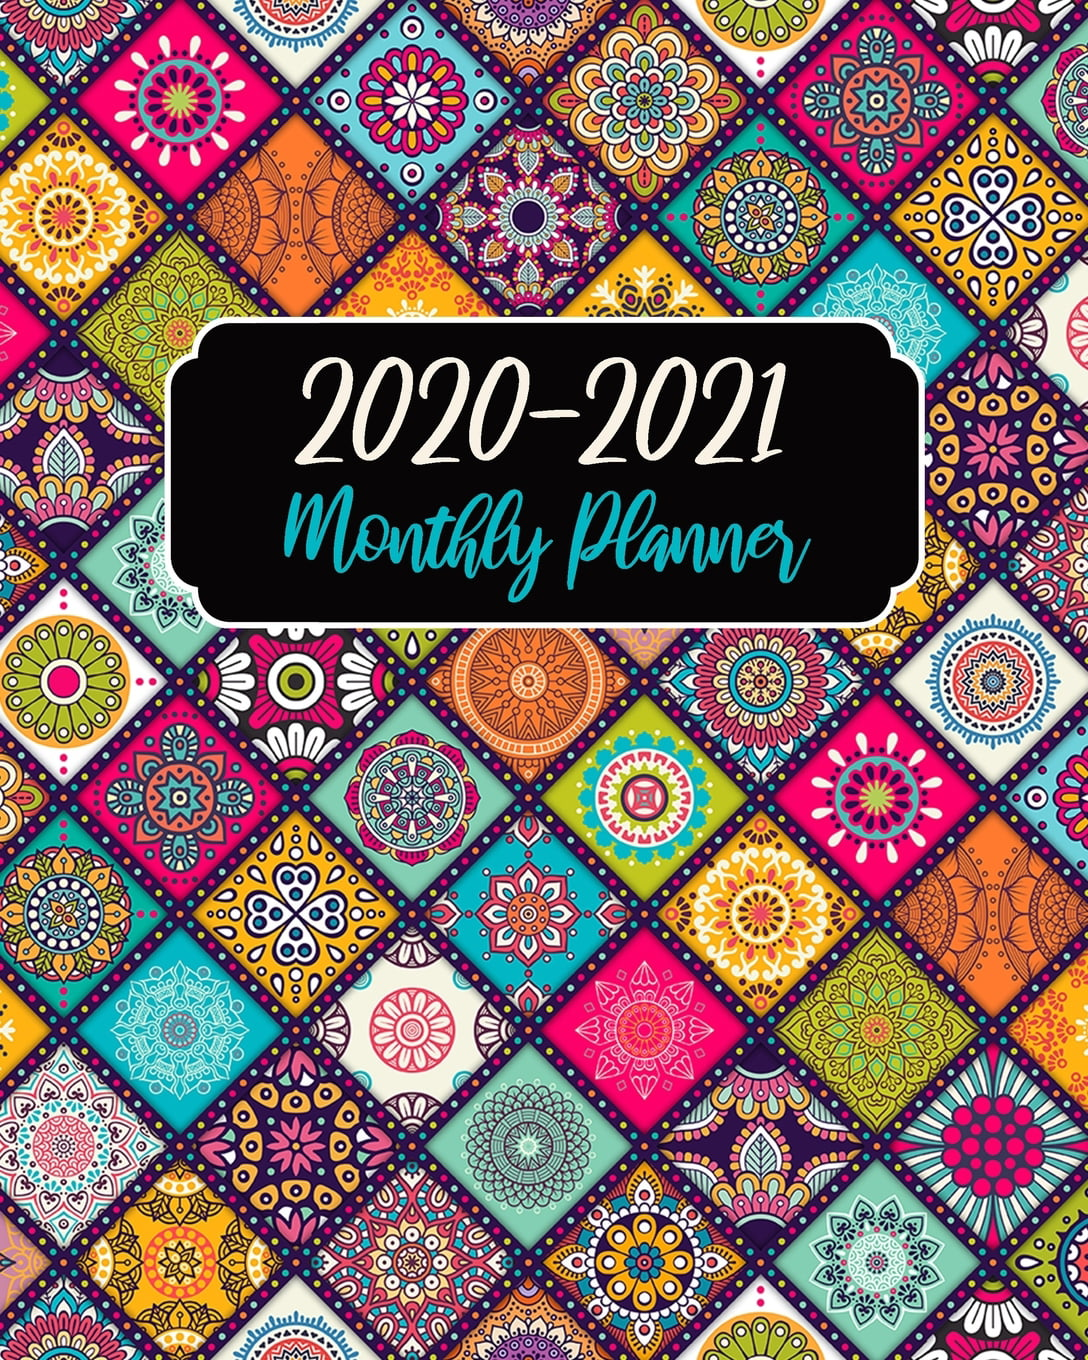 Monthly Planner 2020-2021 : Mandala Cover, January 2020 To